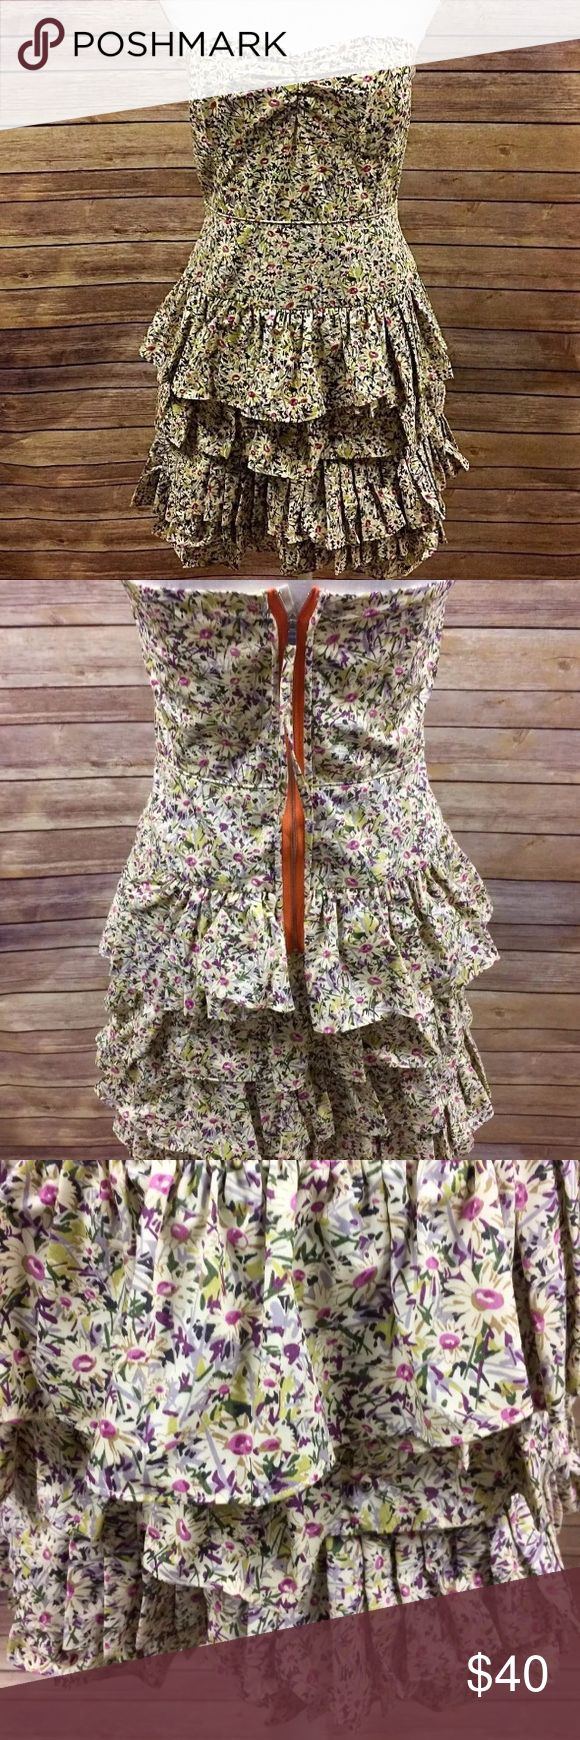 """J Crew Daisy Day Strapless Ruffle Dress Sz 4 I love the thick feel of this fabric! Beautifully stiched.  Brand: J Crew Silouhette: Strapless Tiered Dress Color: Multicolor Floral Size: US Womens 4 Style# 26644 Lined: Yes  Features: Built in bra support hook (see photos) Materials: 100% Cotton  Measurements in Inches laid flat Waist: 14.5""""  Armpit to Armpit: 16"""" Sweep: 22"""" Length: 28""""  Dress doesnt quite zip up the back of the mannequin for reference  Mannequin Specs Height without Base: 28""""…"""